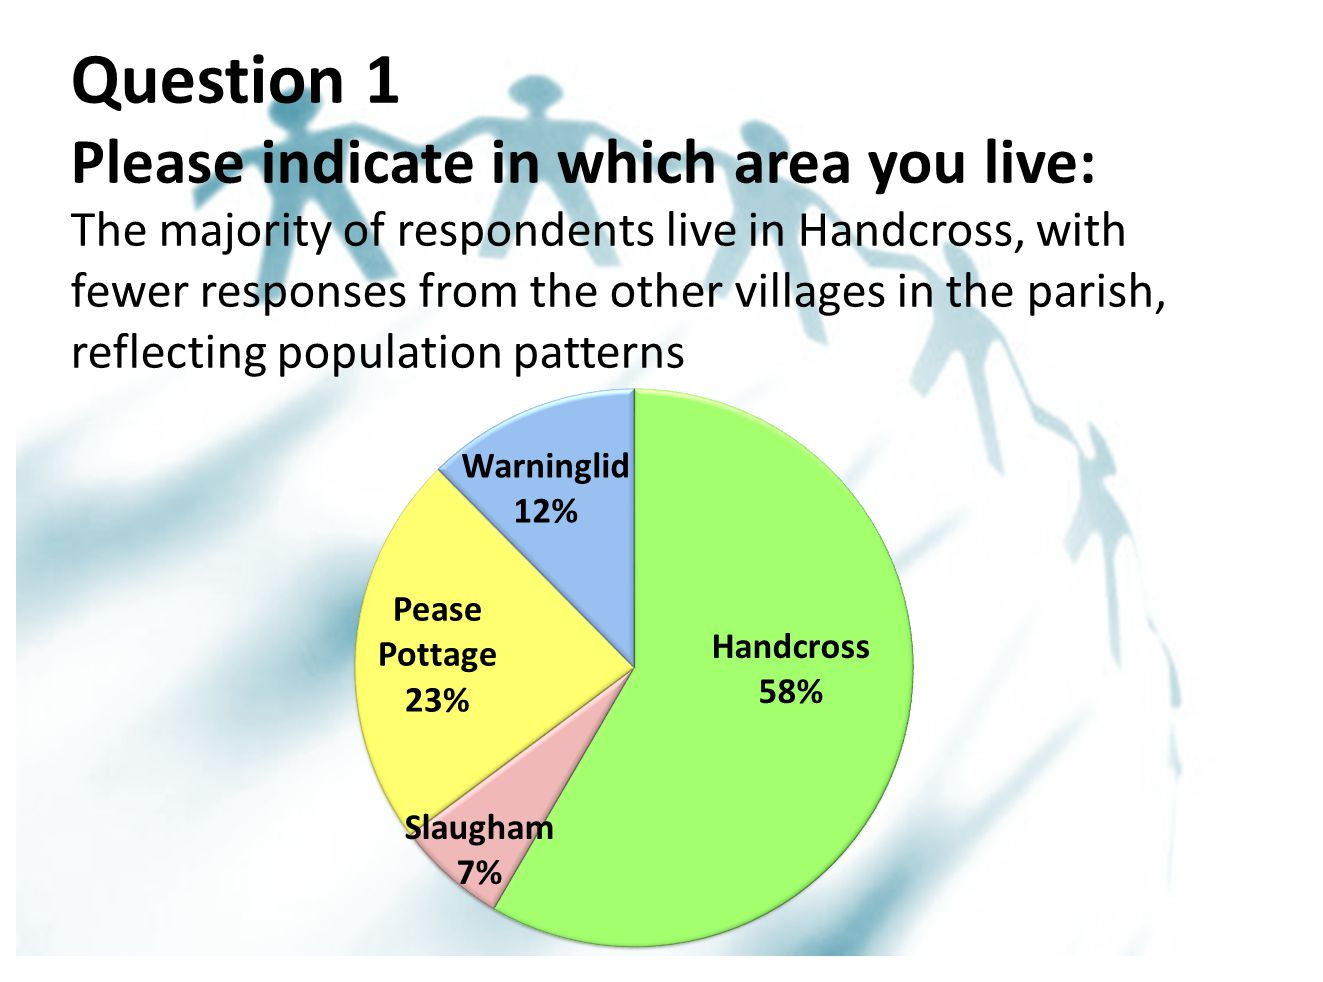 Question 1 Please indicate in which area you live: The majority of respondents live in Handcross, with fewer responses from the other villages in the parish, reflecting population patterns